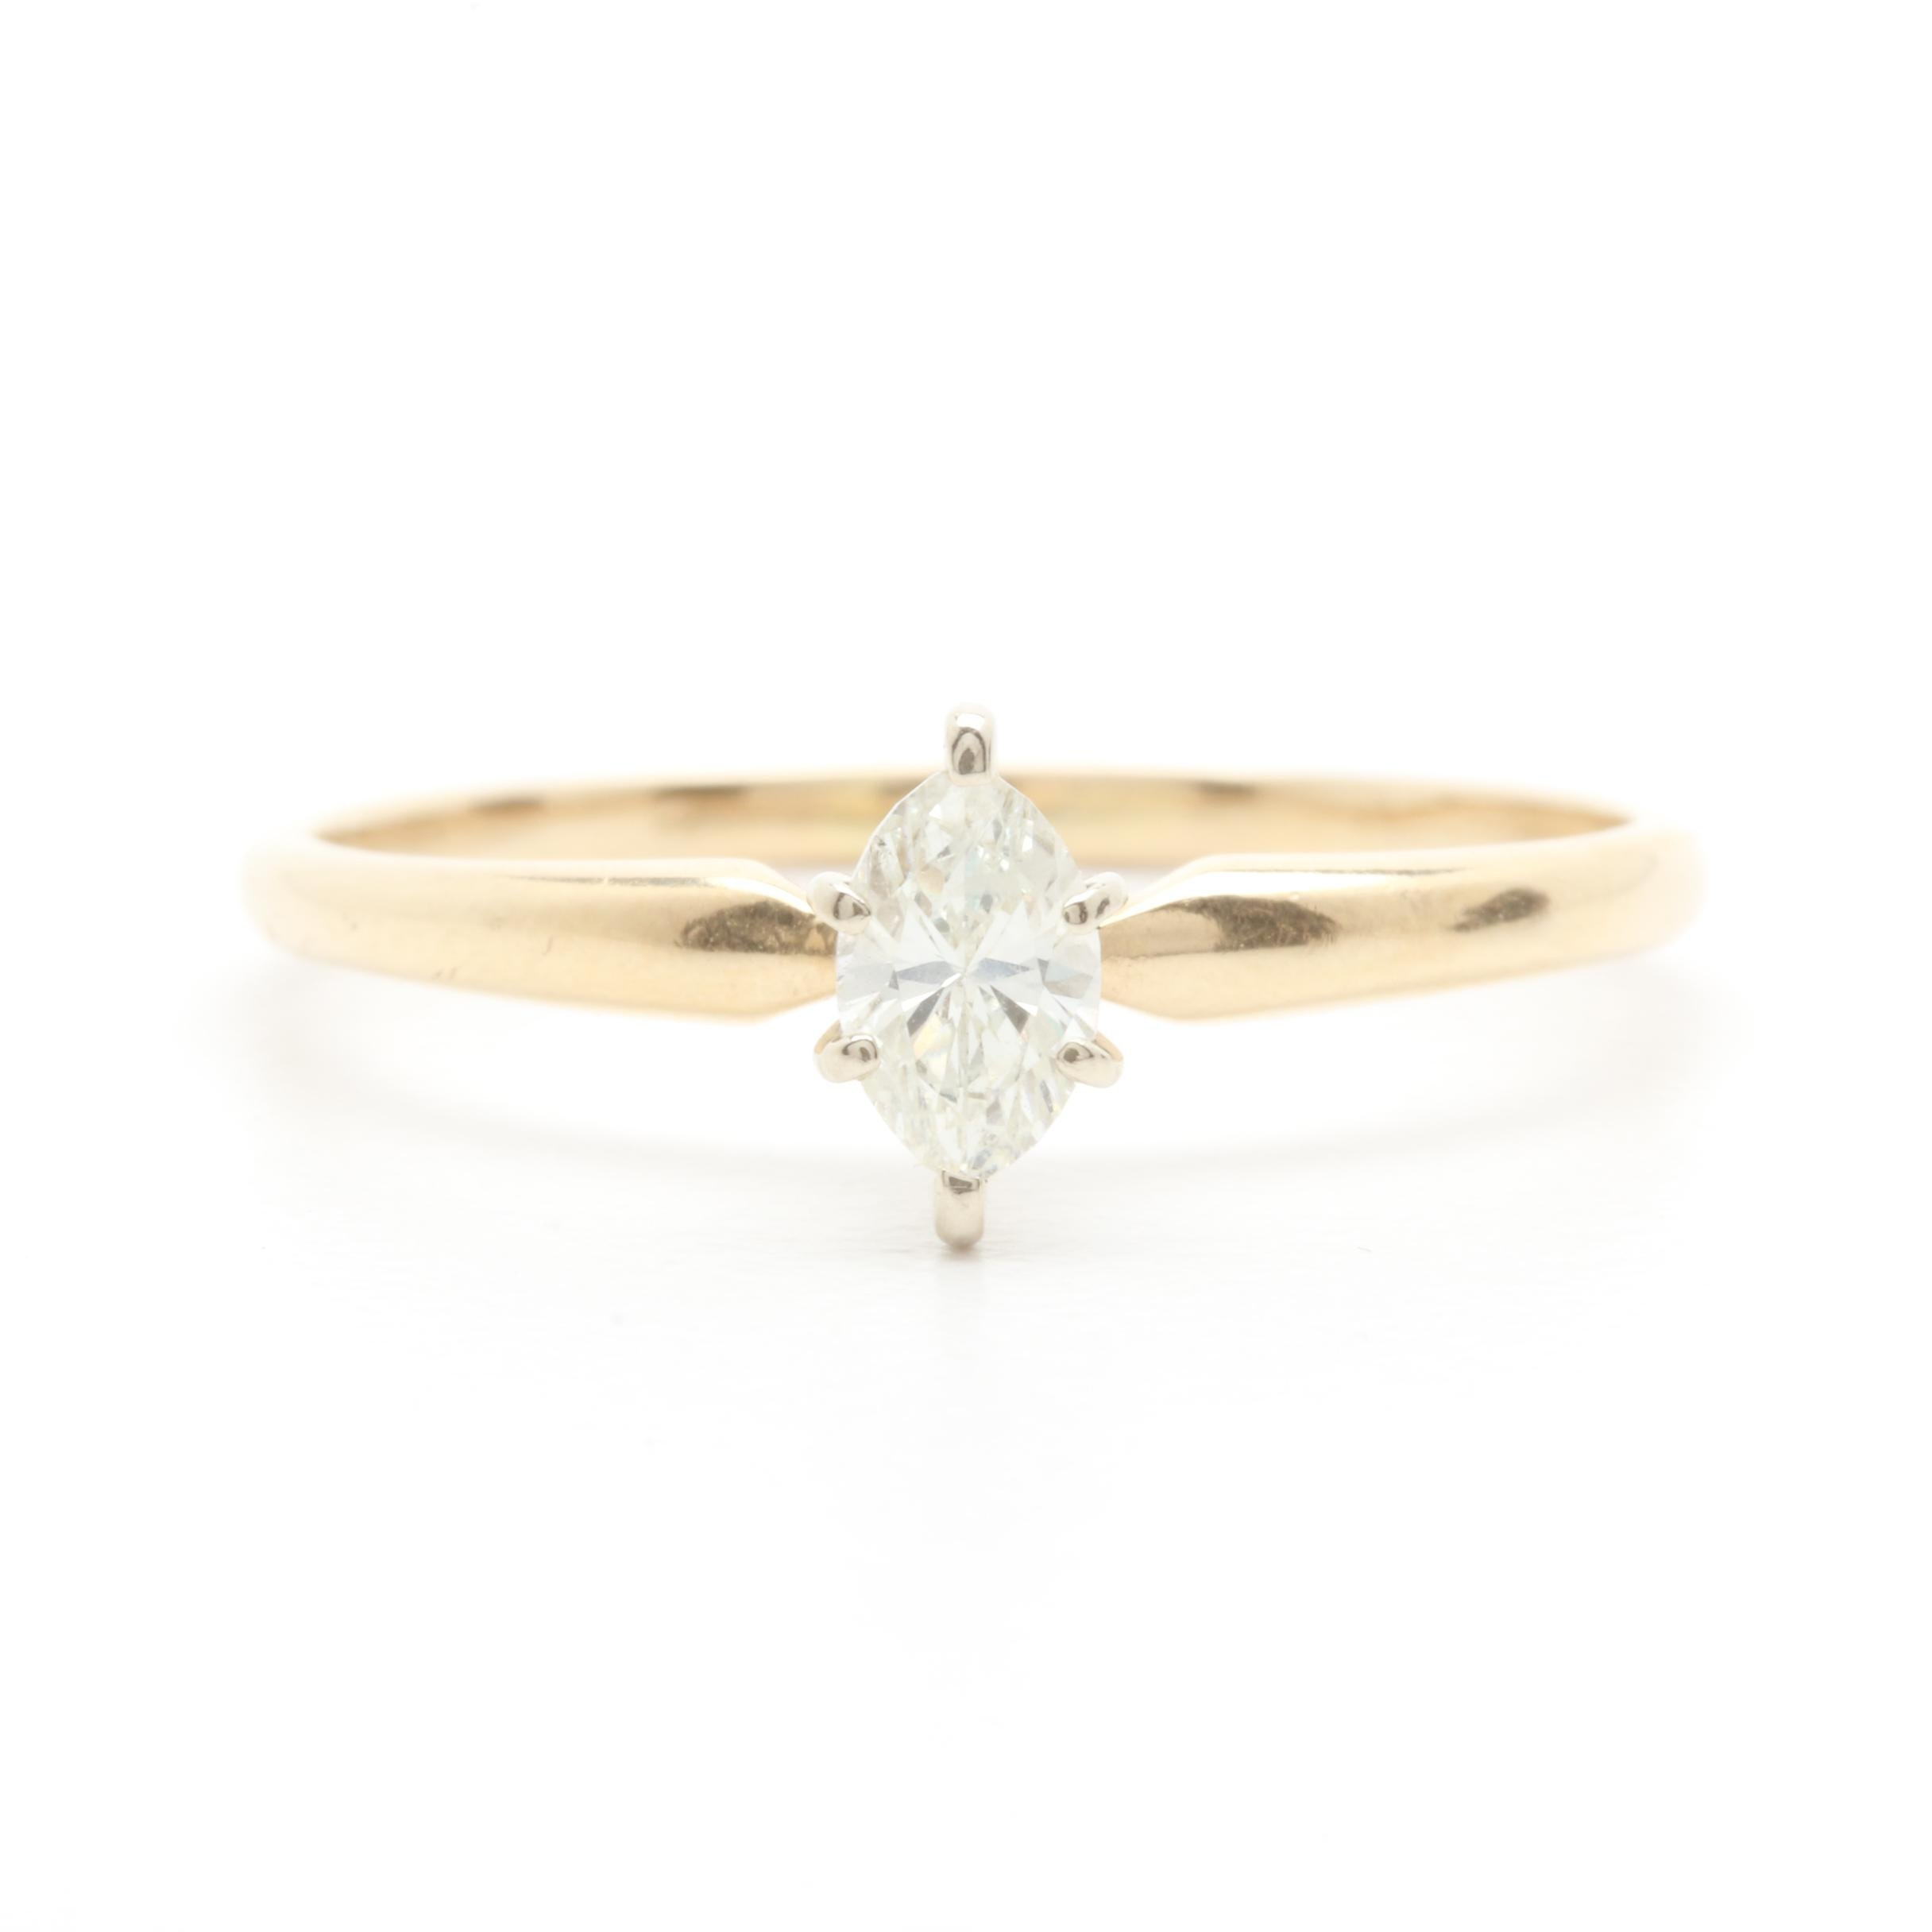 14K Yellow Gold Diamond Solitaire Ring with White Gold Head